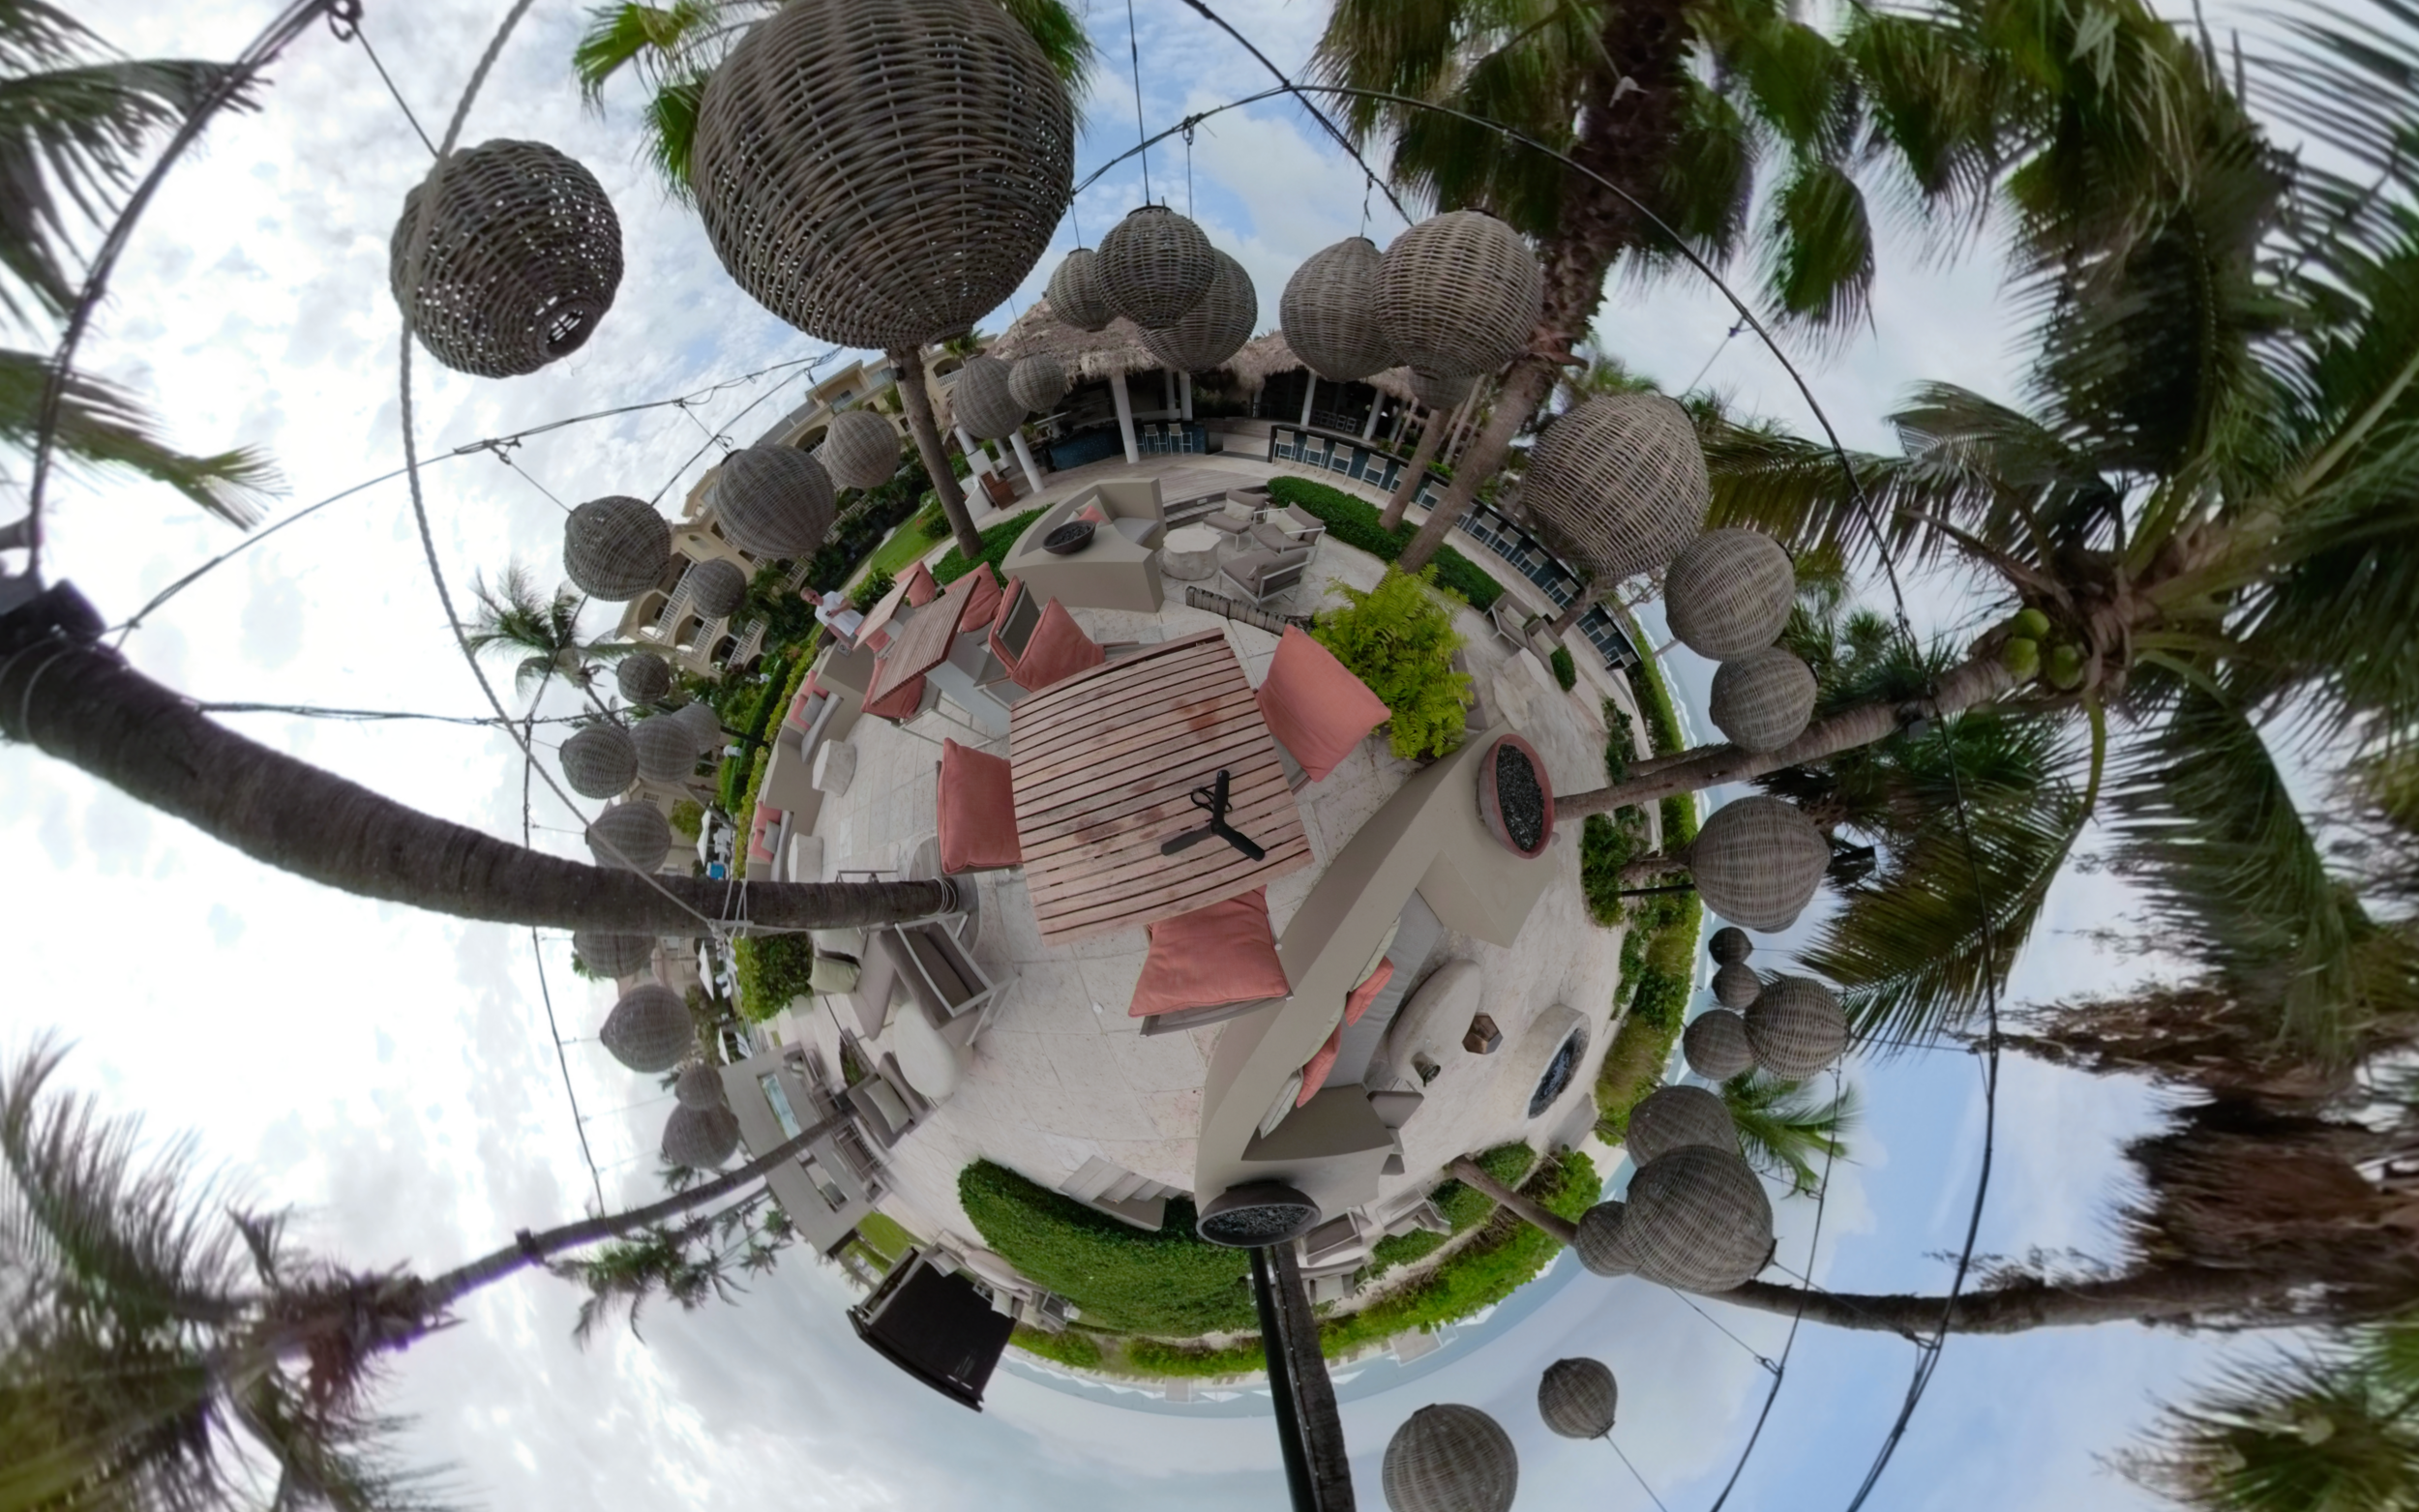 Grace Bay, Fire Pit - Click for VR 360